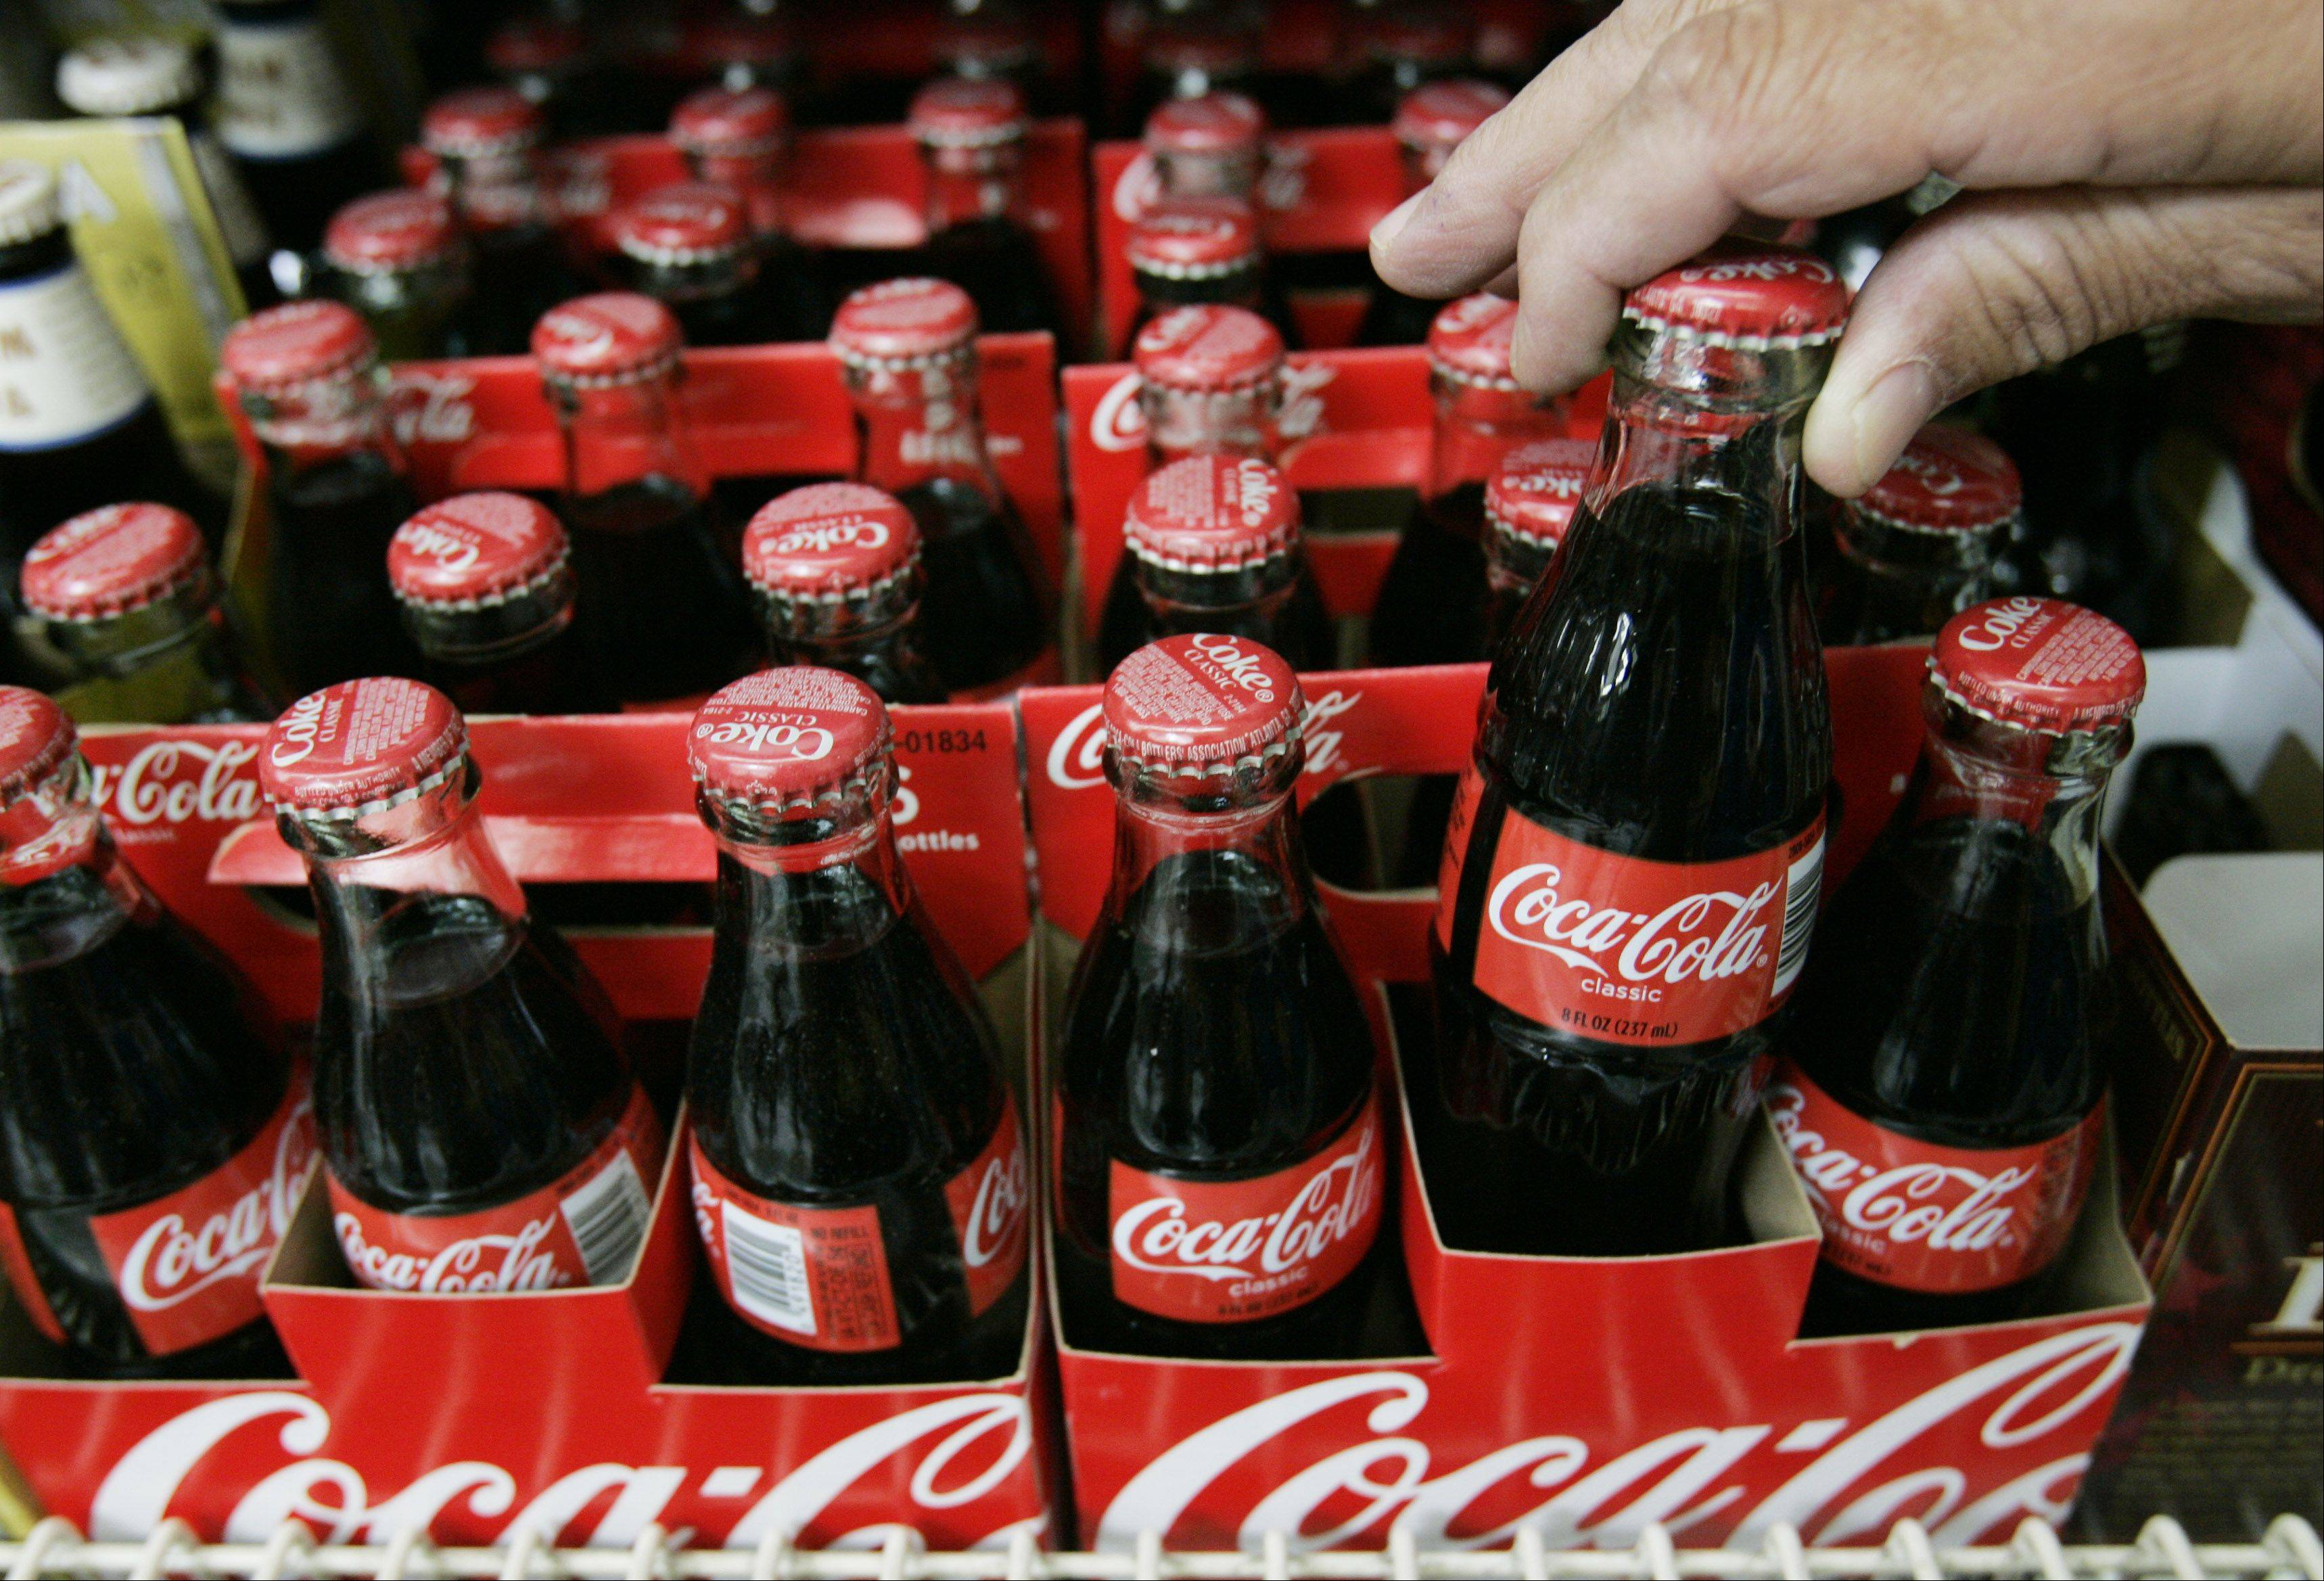 A New Zealand food industry association on Wednesday rejected a coroner's call to add health warnings to soft-drink labels following the 2010 death of a woman who drank about 2 gallons of Coca-Cola a day.